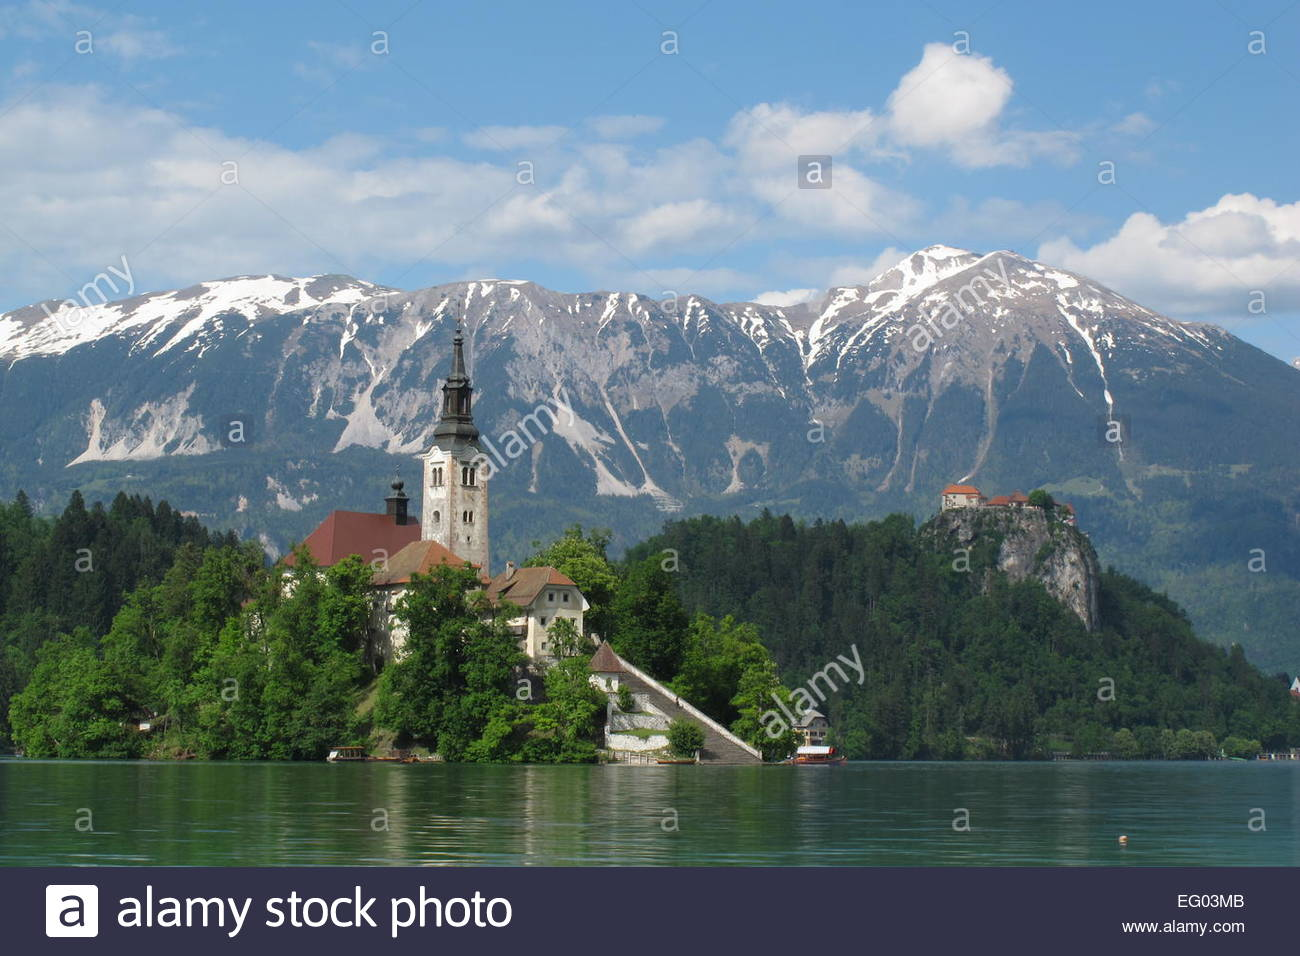 Pilgrimage Church of the Assumption of Maria, Bled, Slovenia - A...